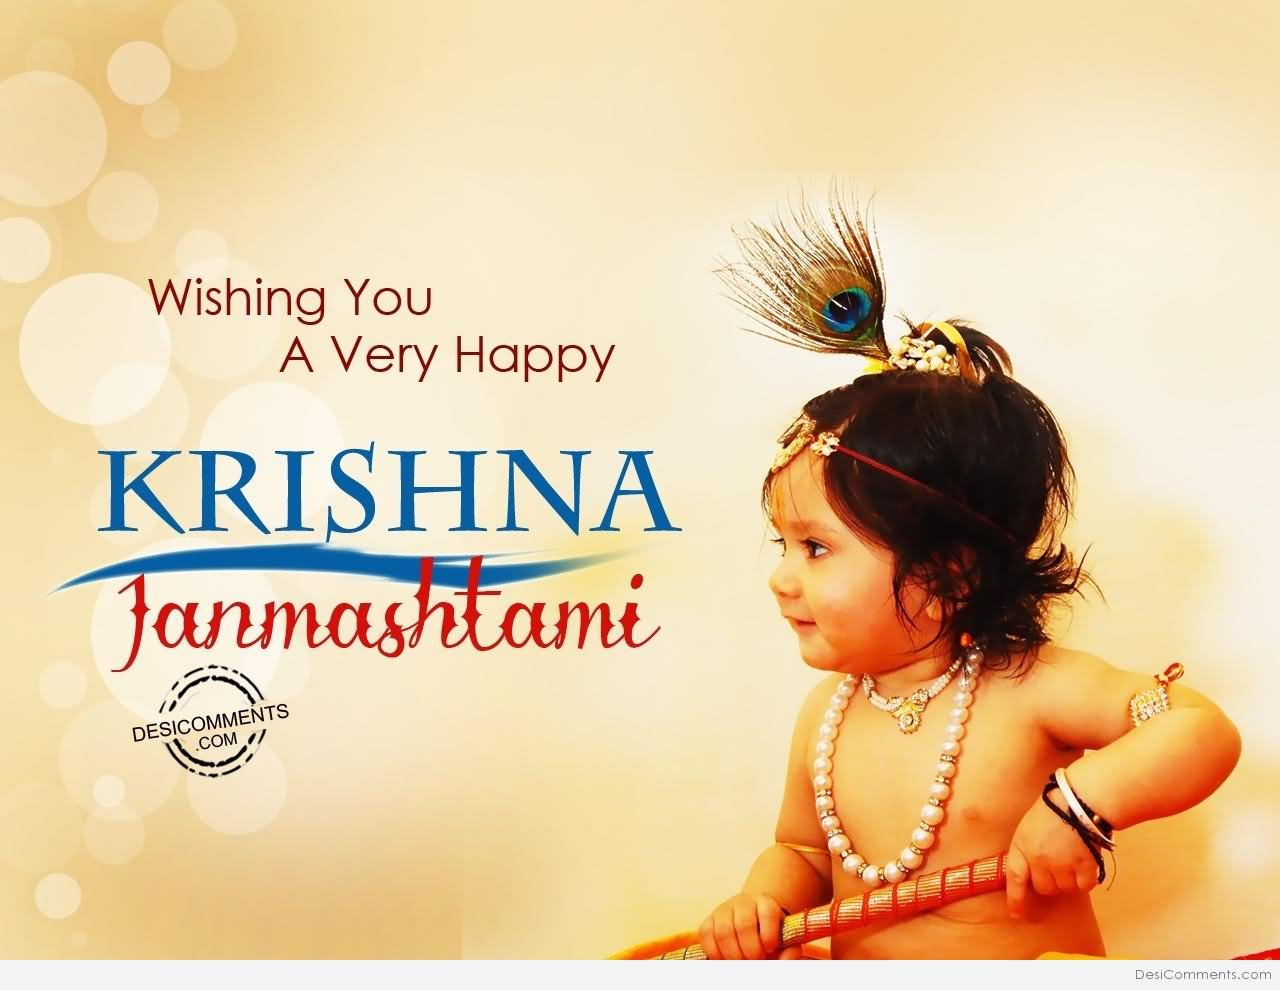 Malayalam Love Quotes Hd Wallpapers 40 Best Krishna Janmashtami 2016 Greeting Pictures And Images